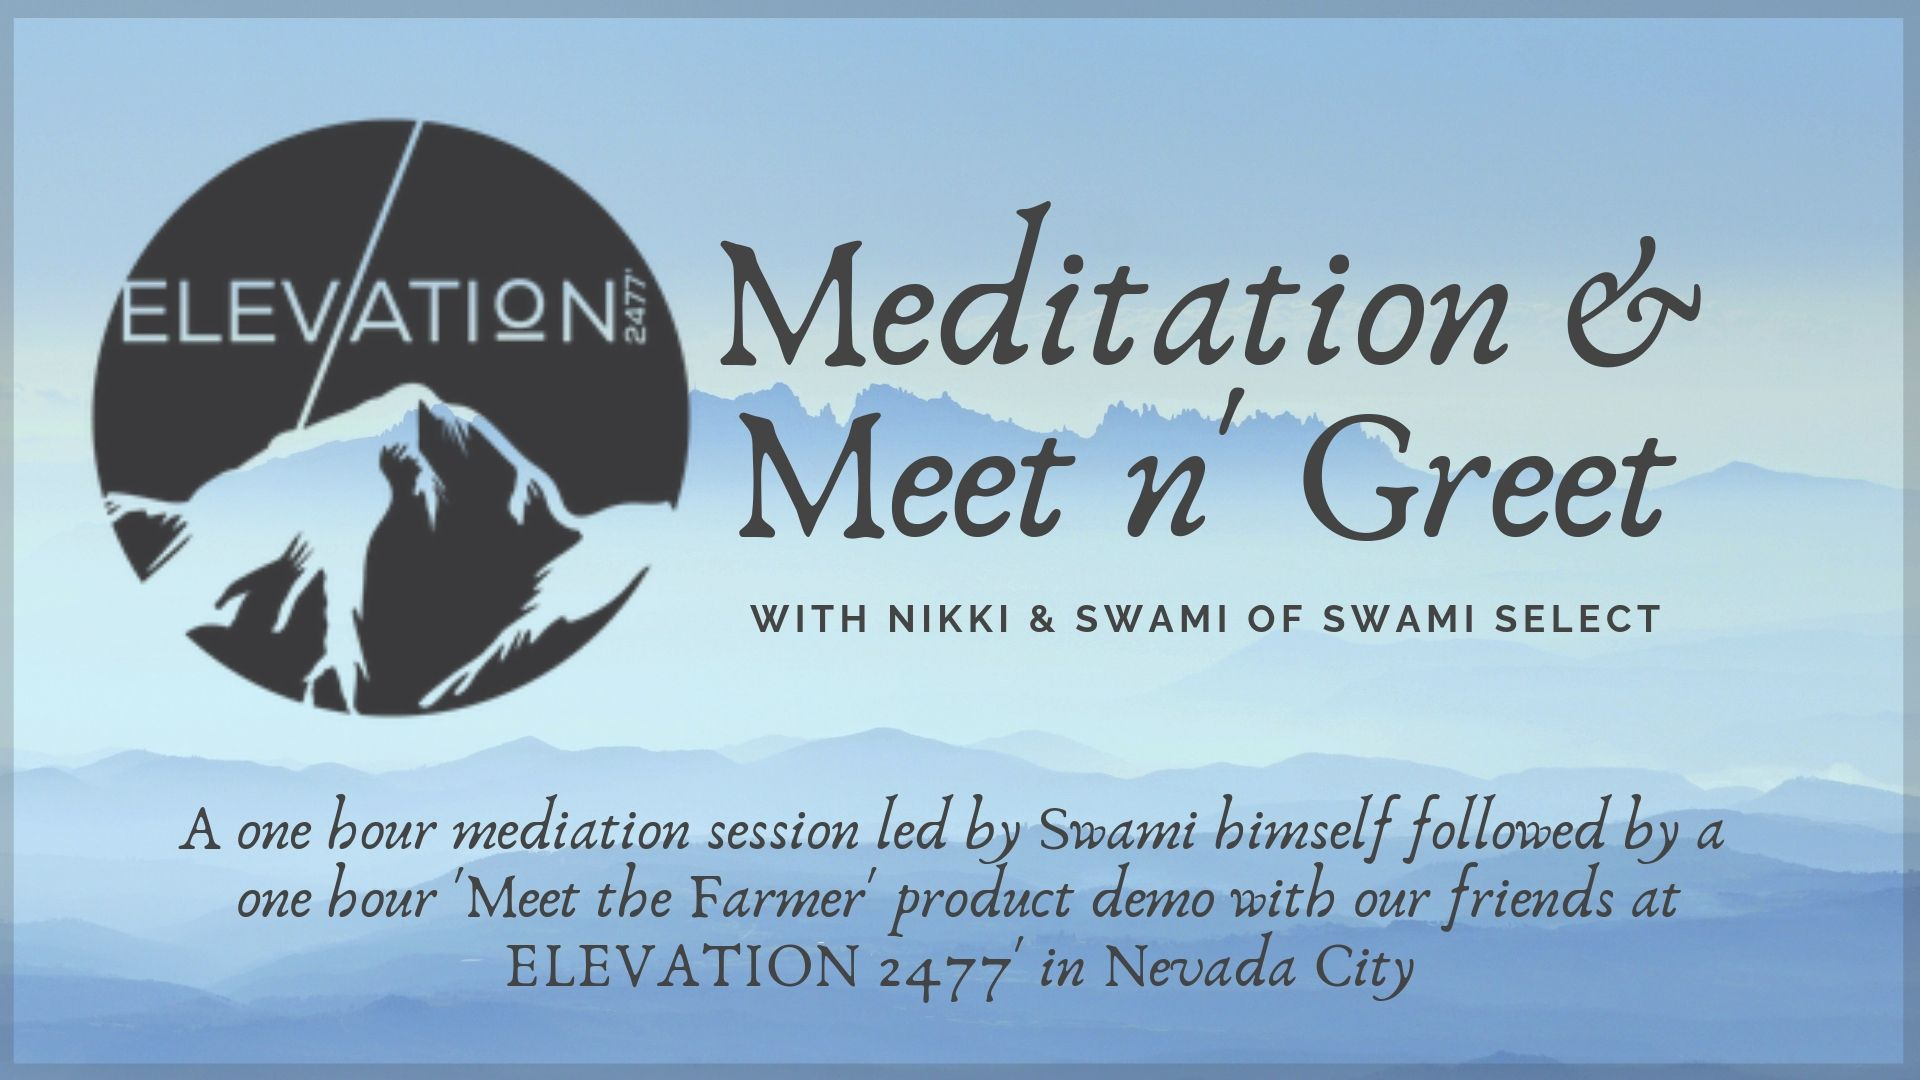 Swami Select In-Store Meditation & Meet n' Greet: ELEVATION 2477'